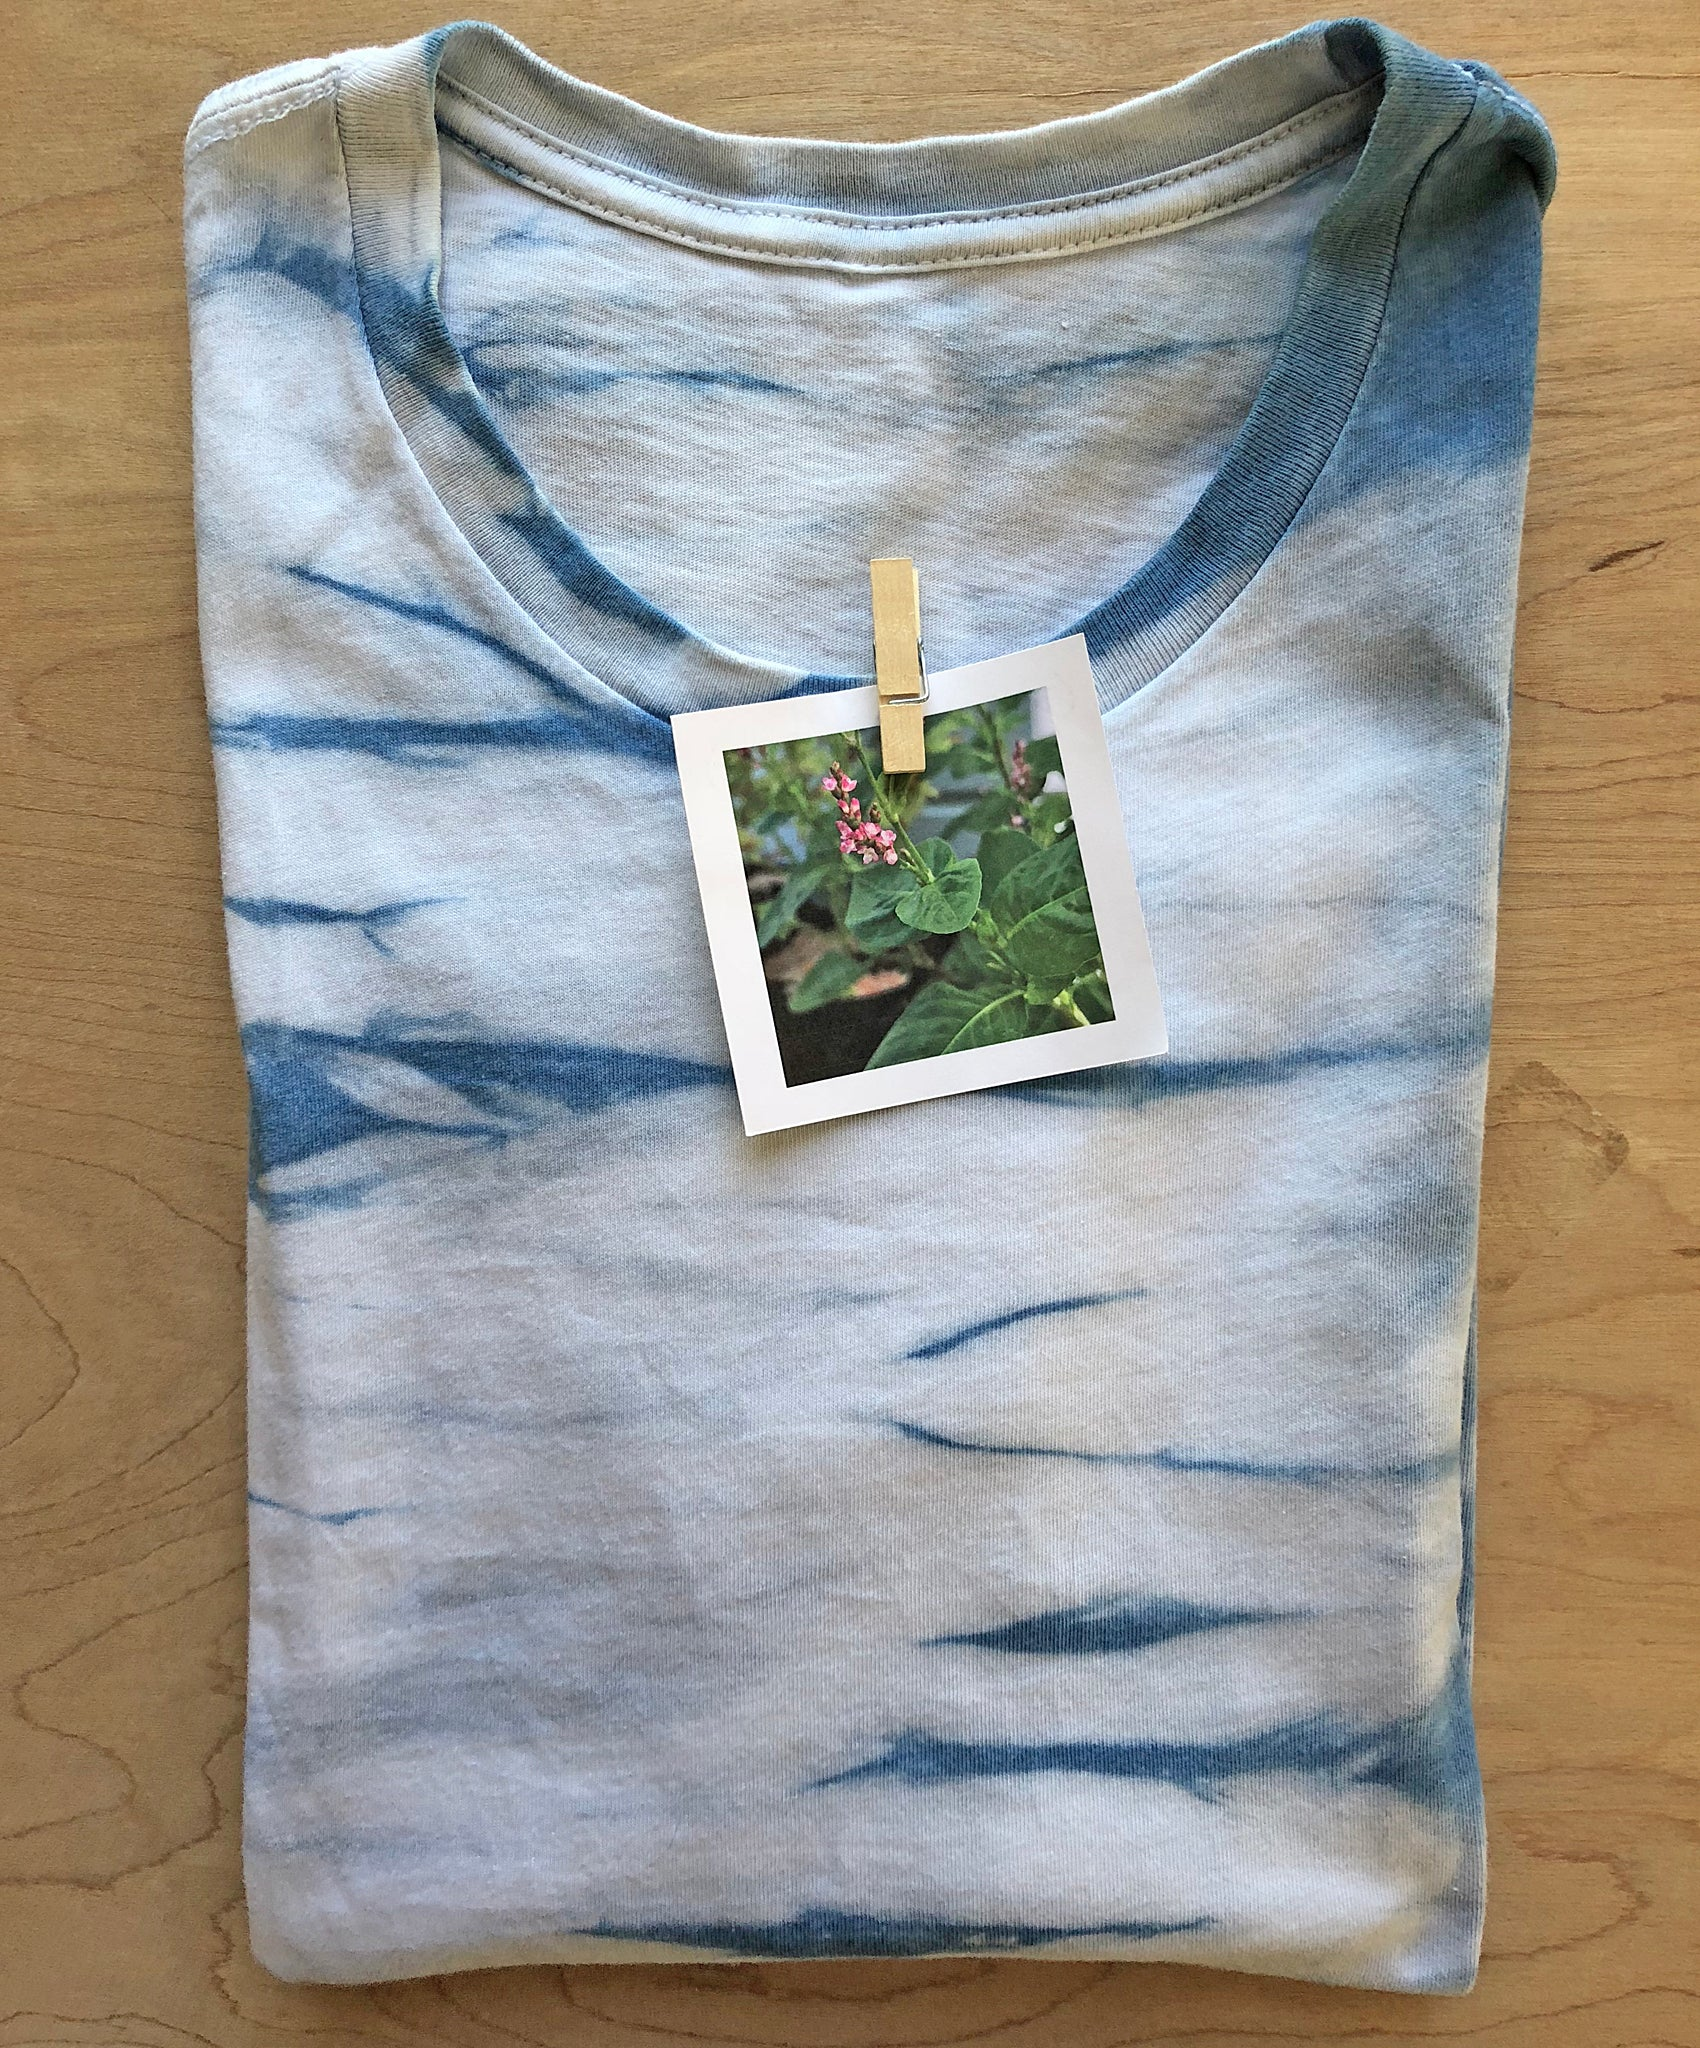 Indigo T-shirt, small